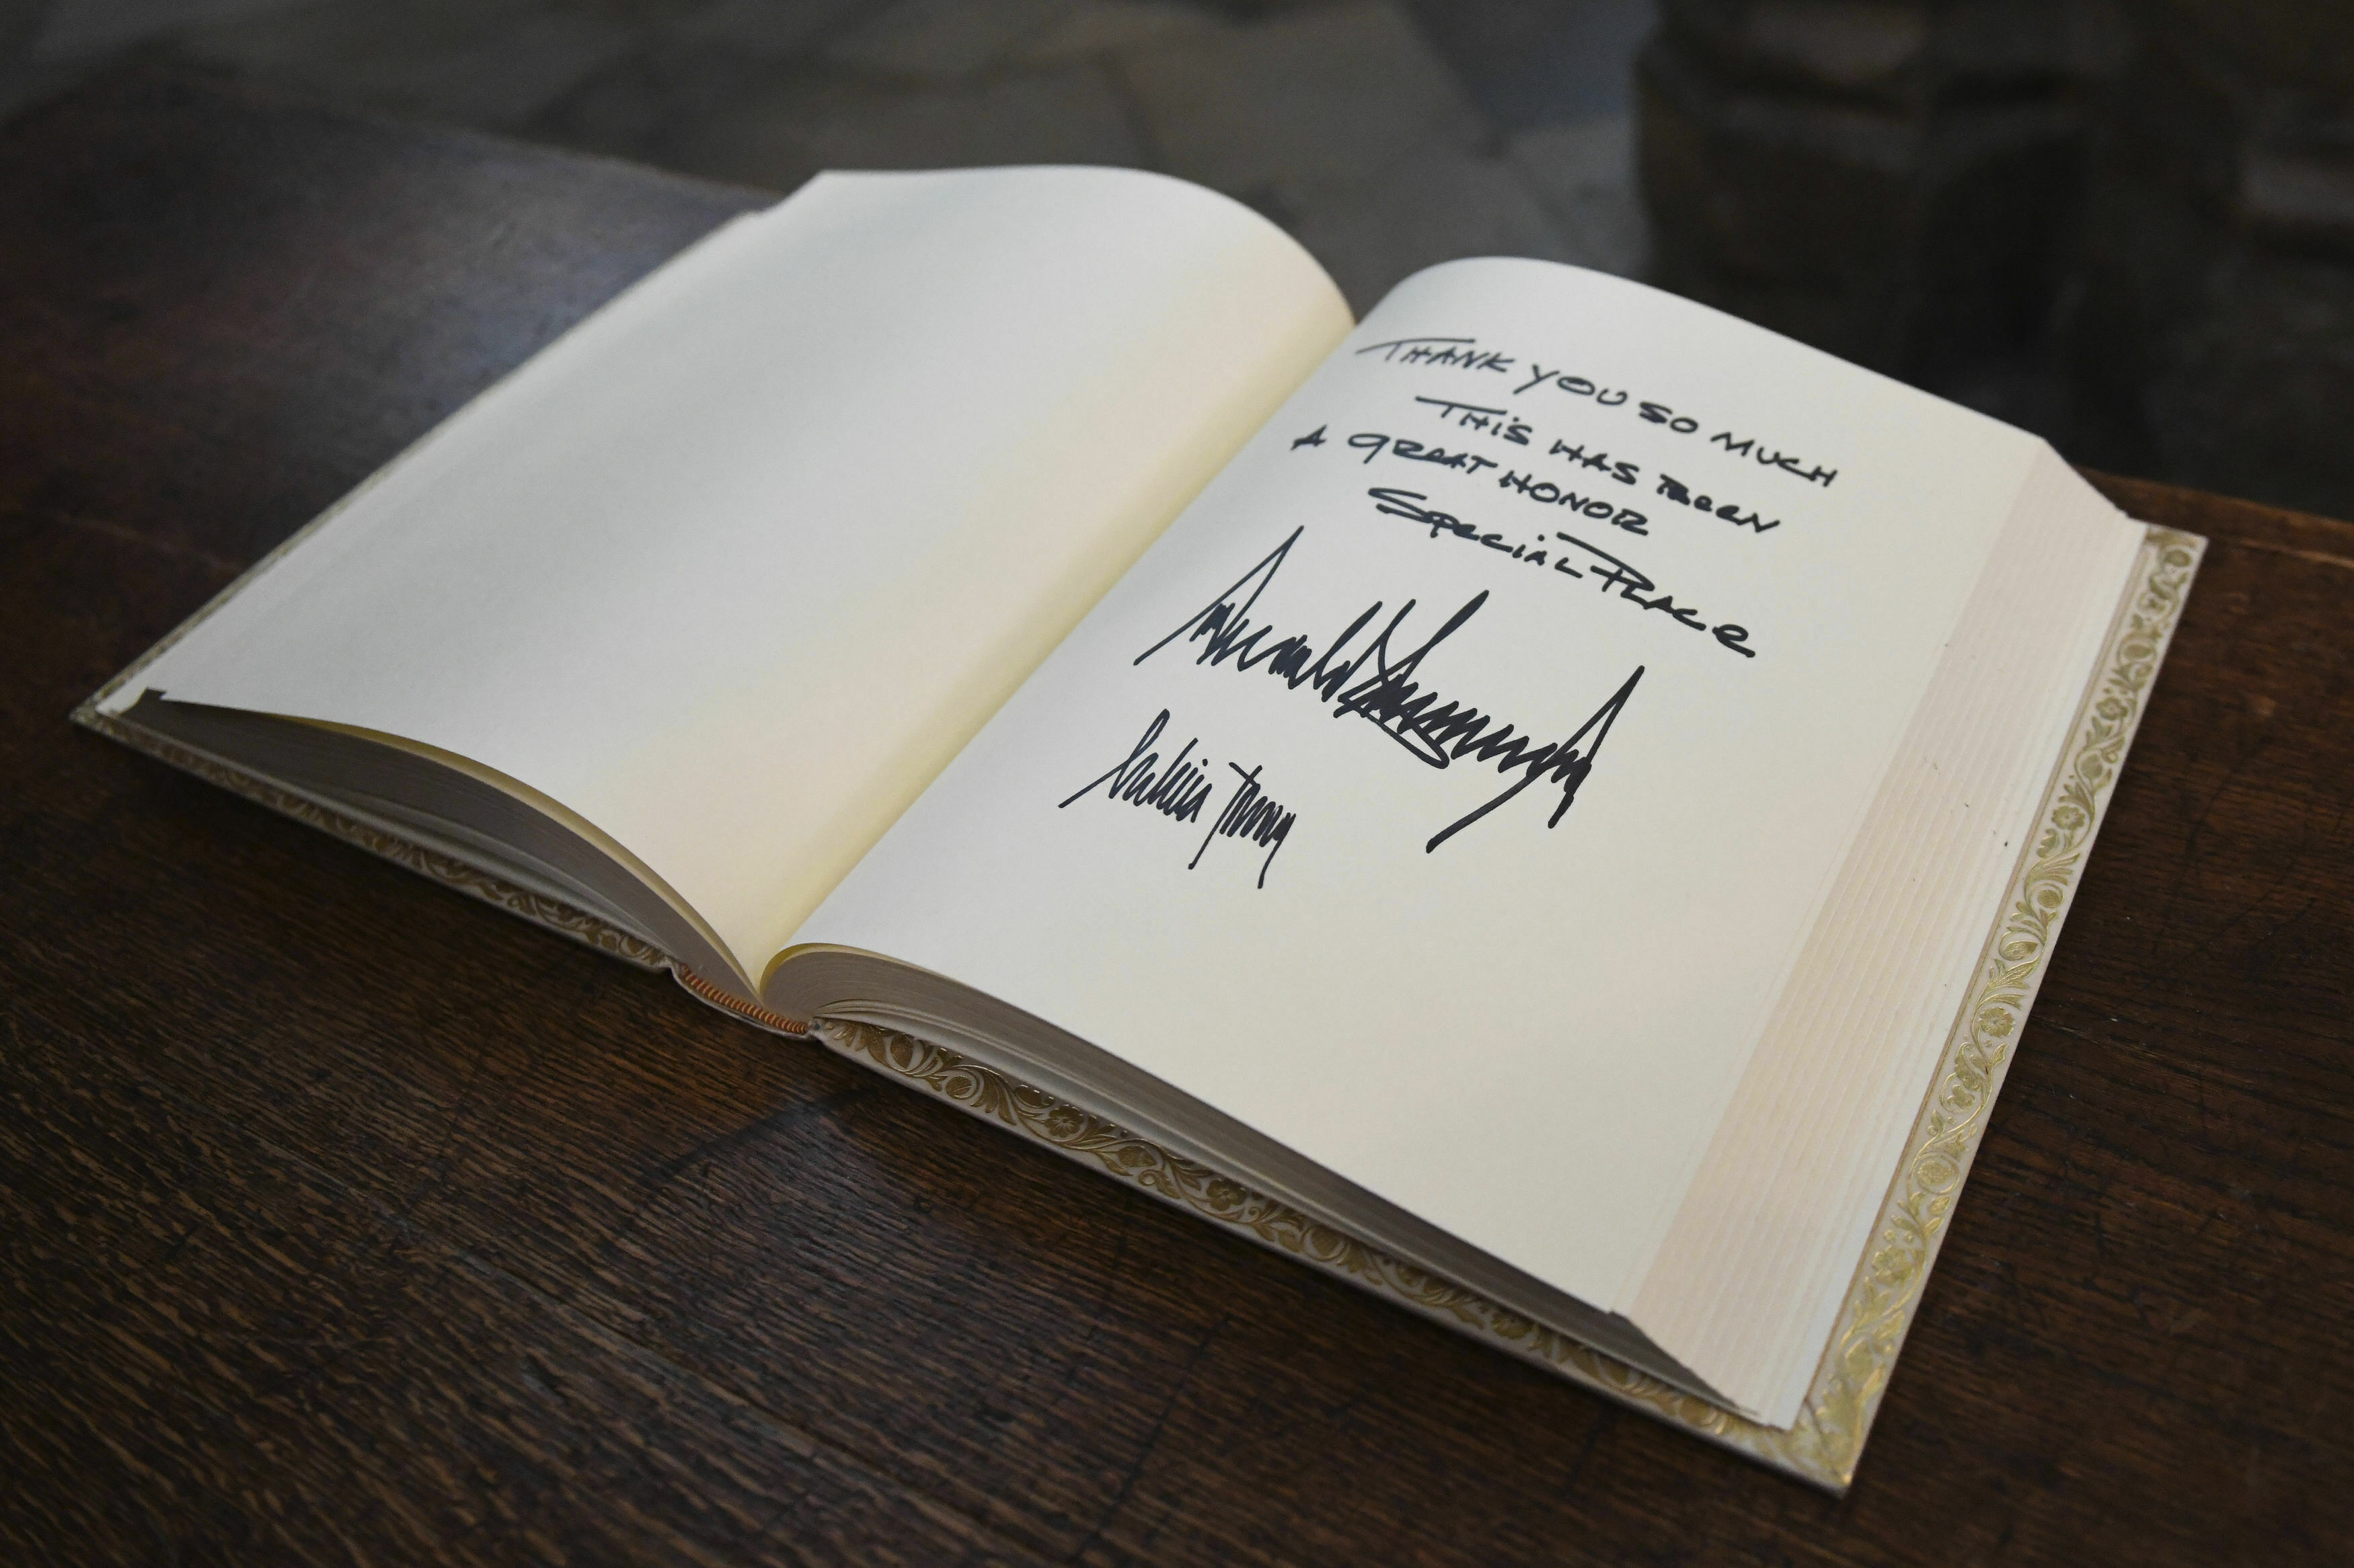 The visitors books signed by US President Donald Trump and his wife Melania